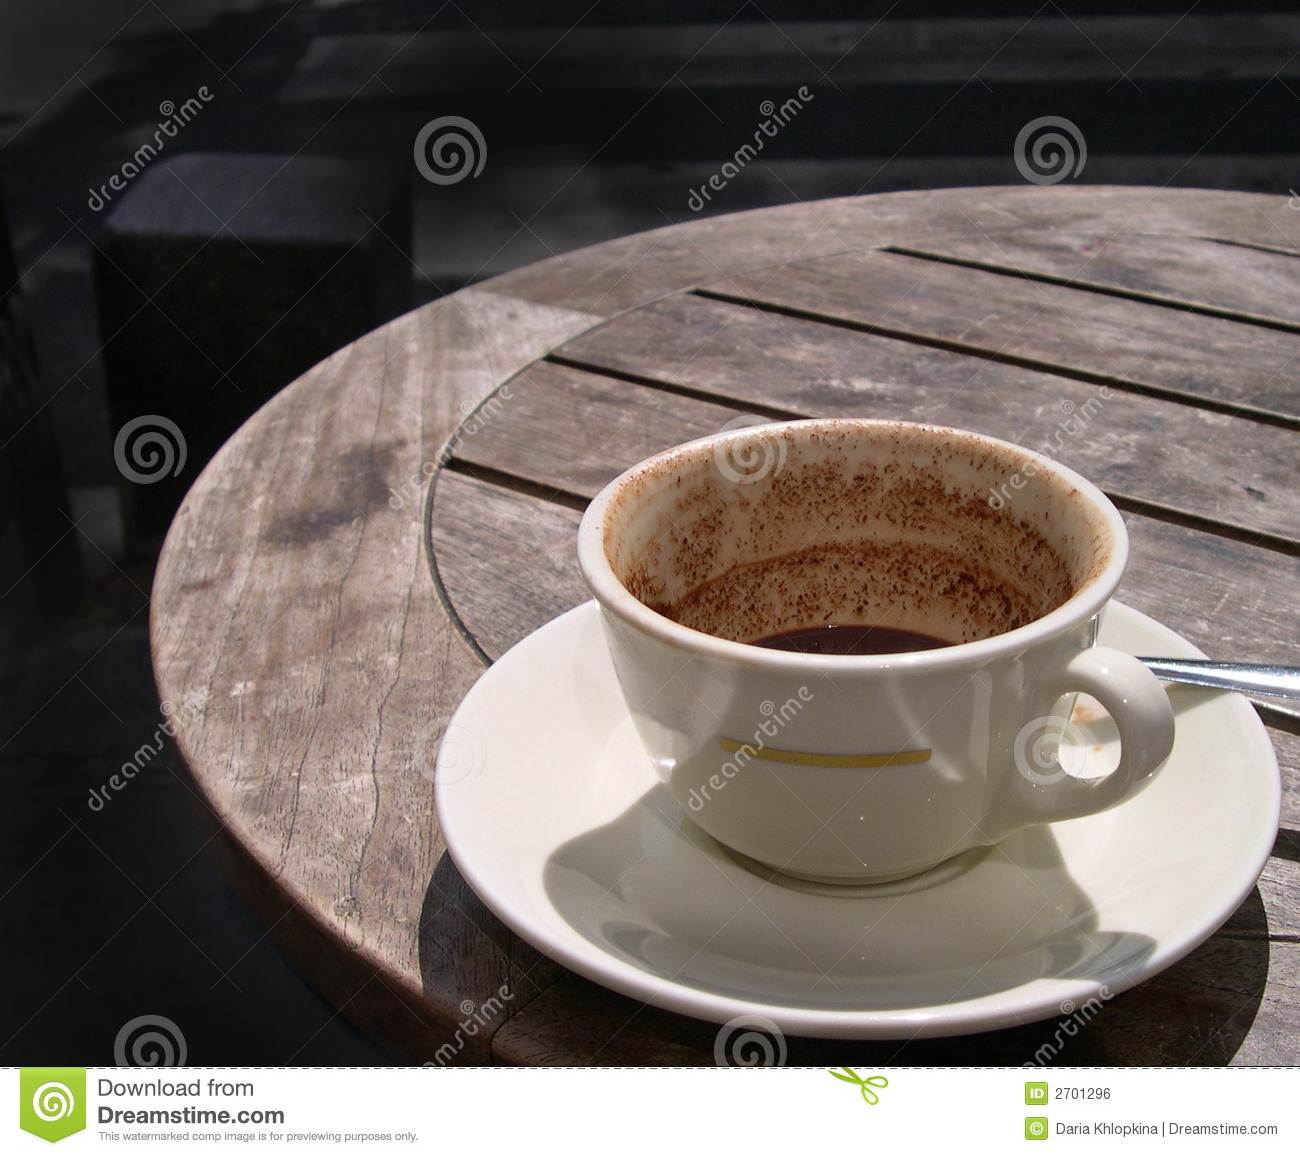 Coffee Table With Seats Half-empty Cup On A Cafe Table Stock Photo - Image: 2701296